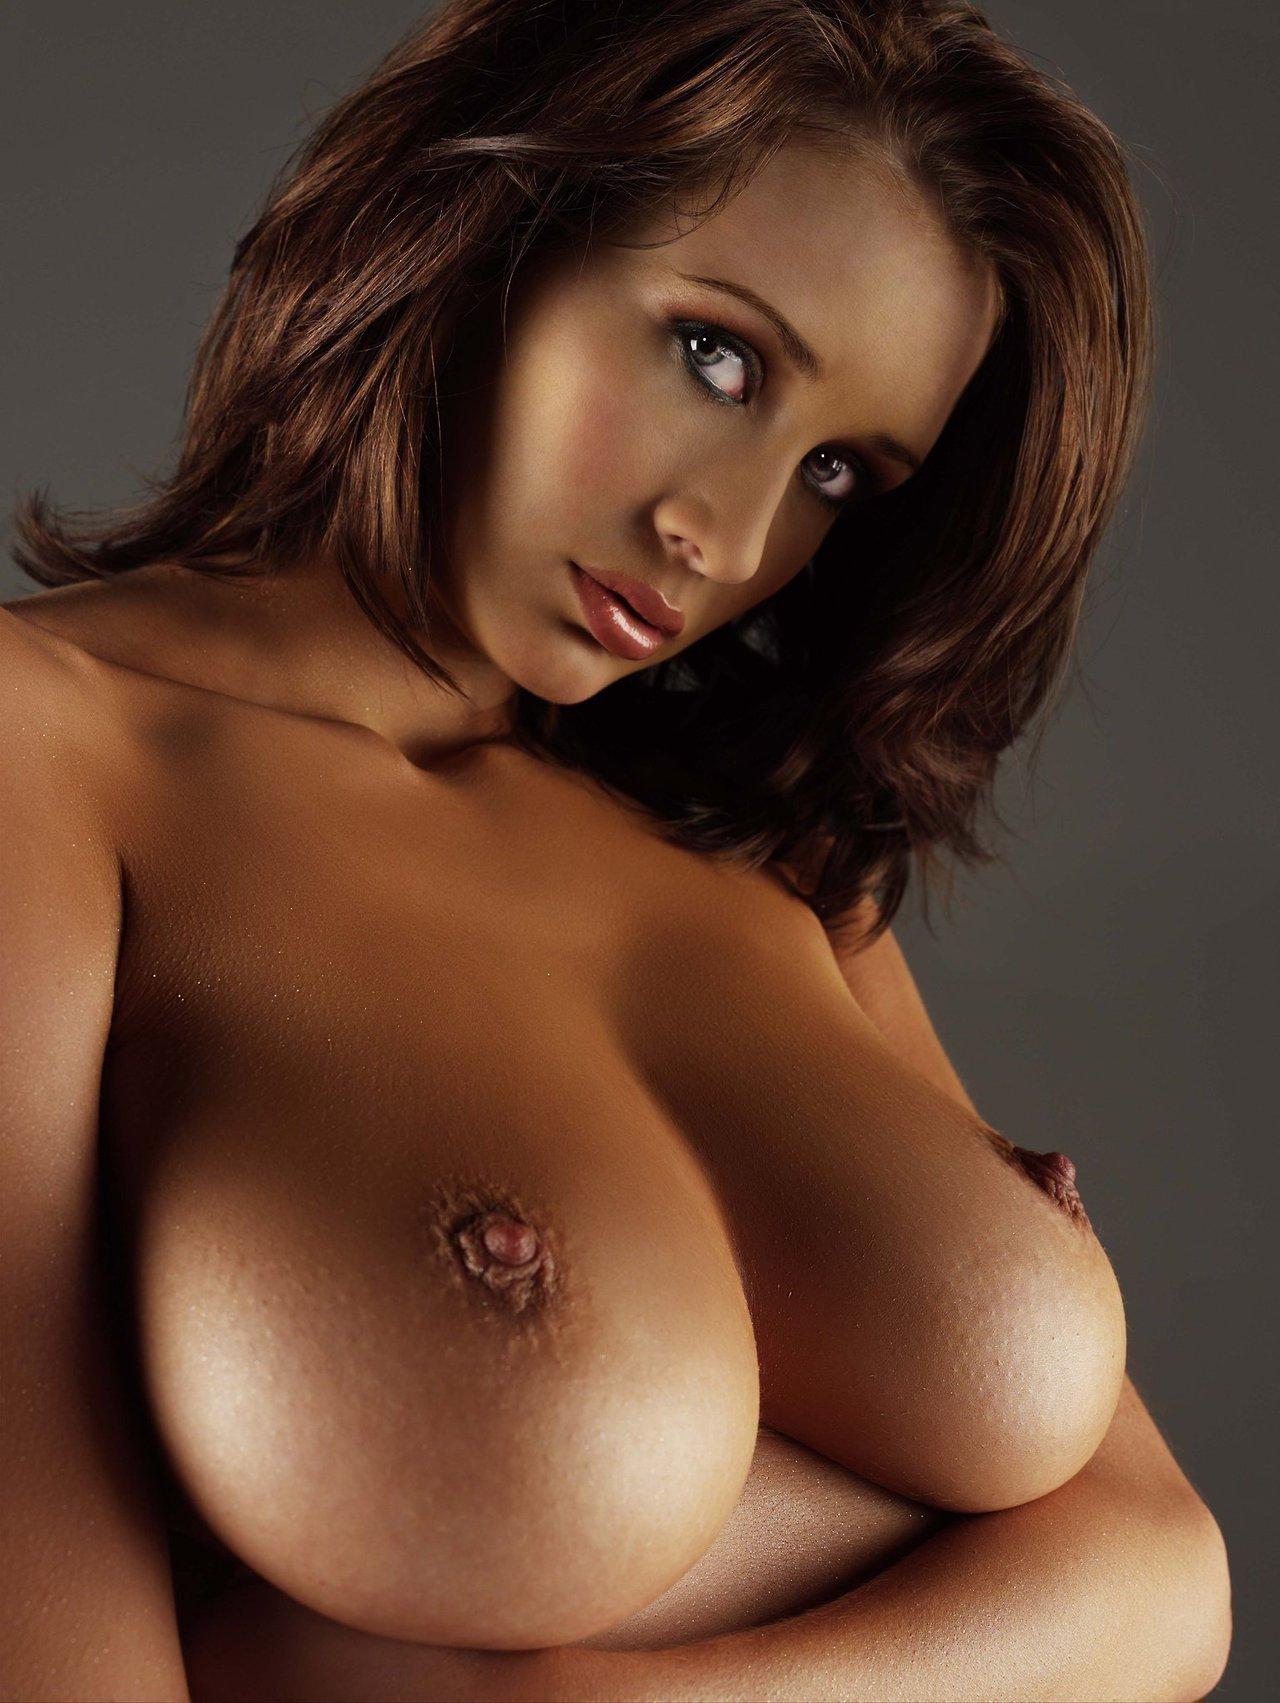 rope-naked-big-tits-hot-women-babe-huge-nipples